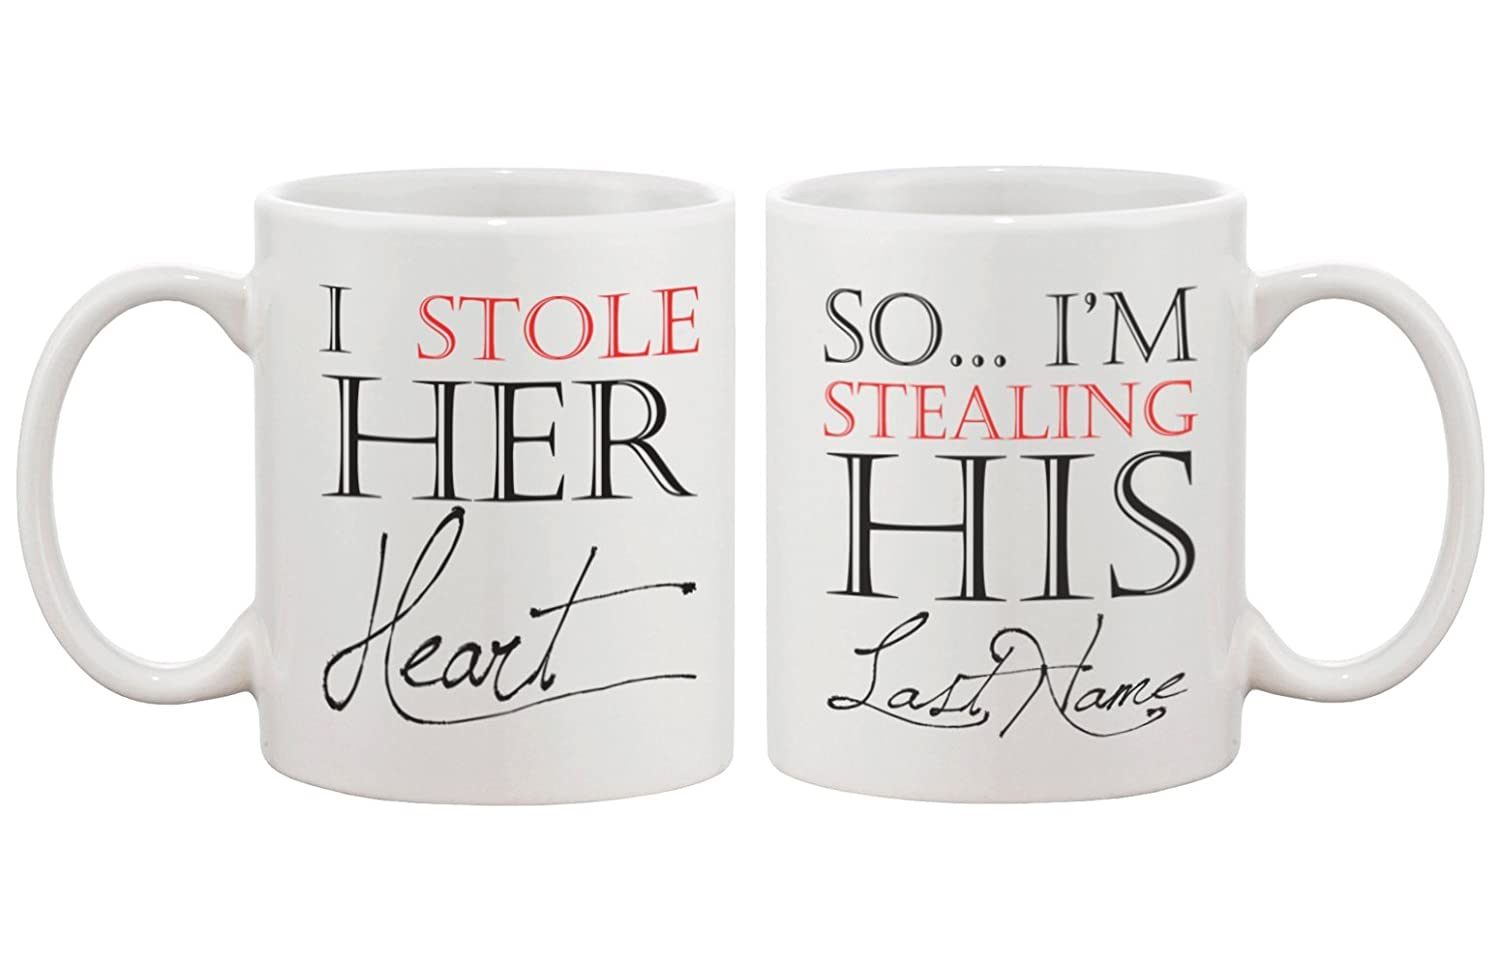 His And Her Wedding Gifts Ideas : ... Wedding and Engagement Gift for Newlyweds Wedding Gifts Library